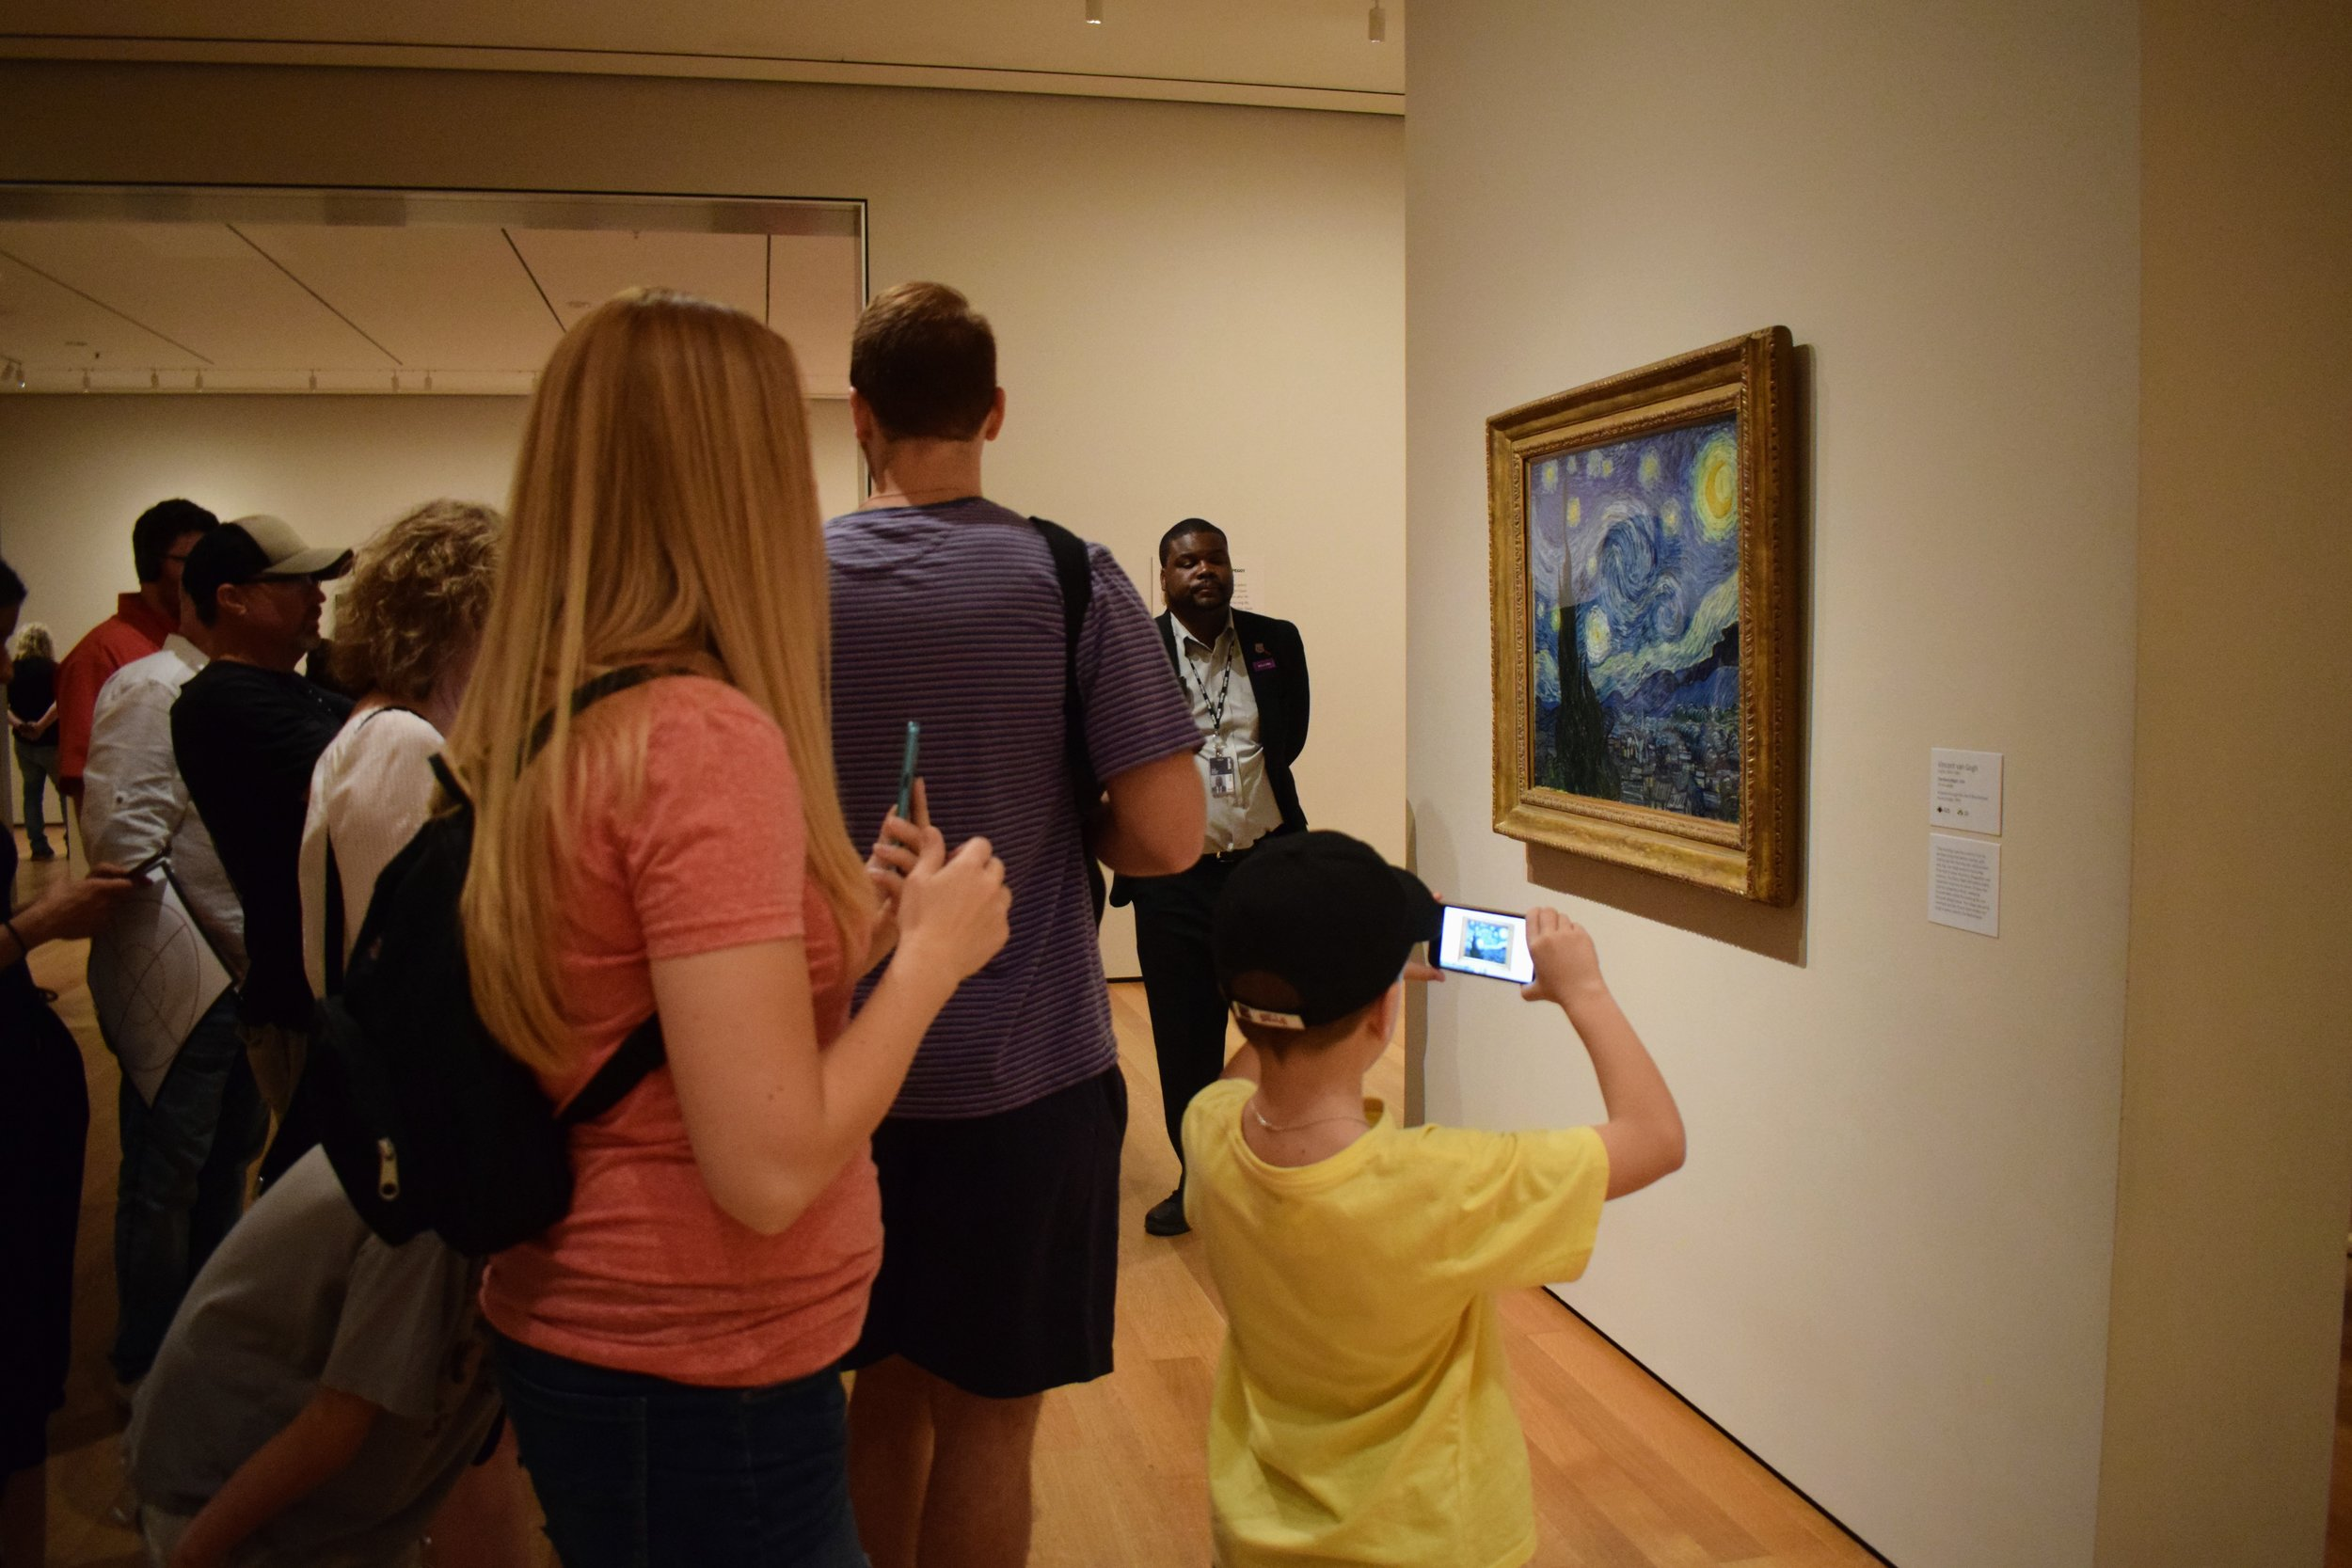 The small crowd photographing Van Gogh's Starry Night.